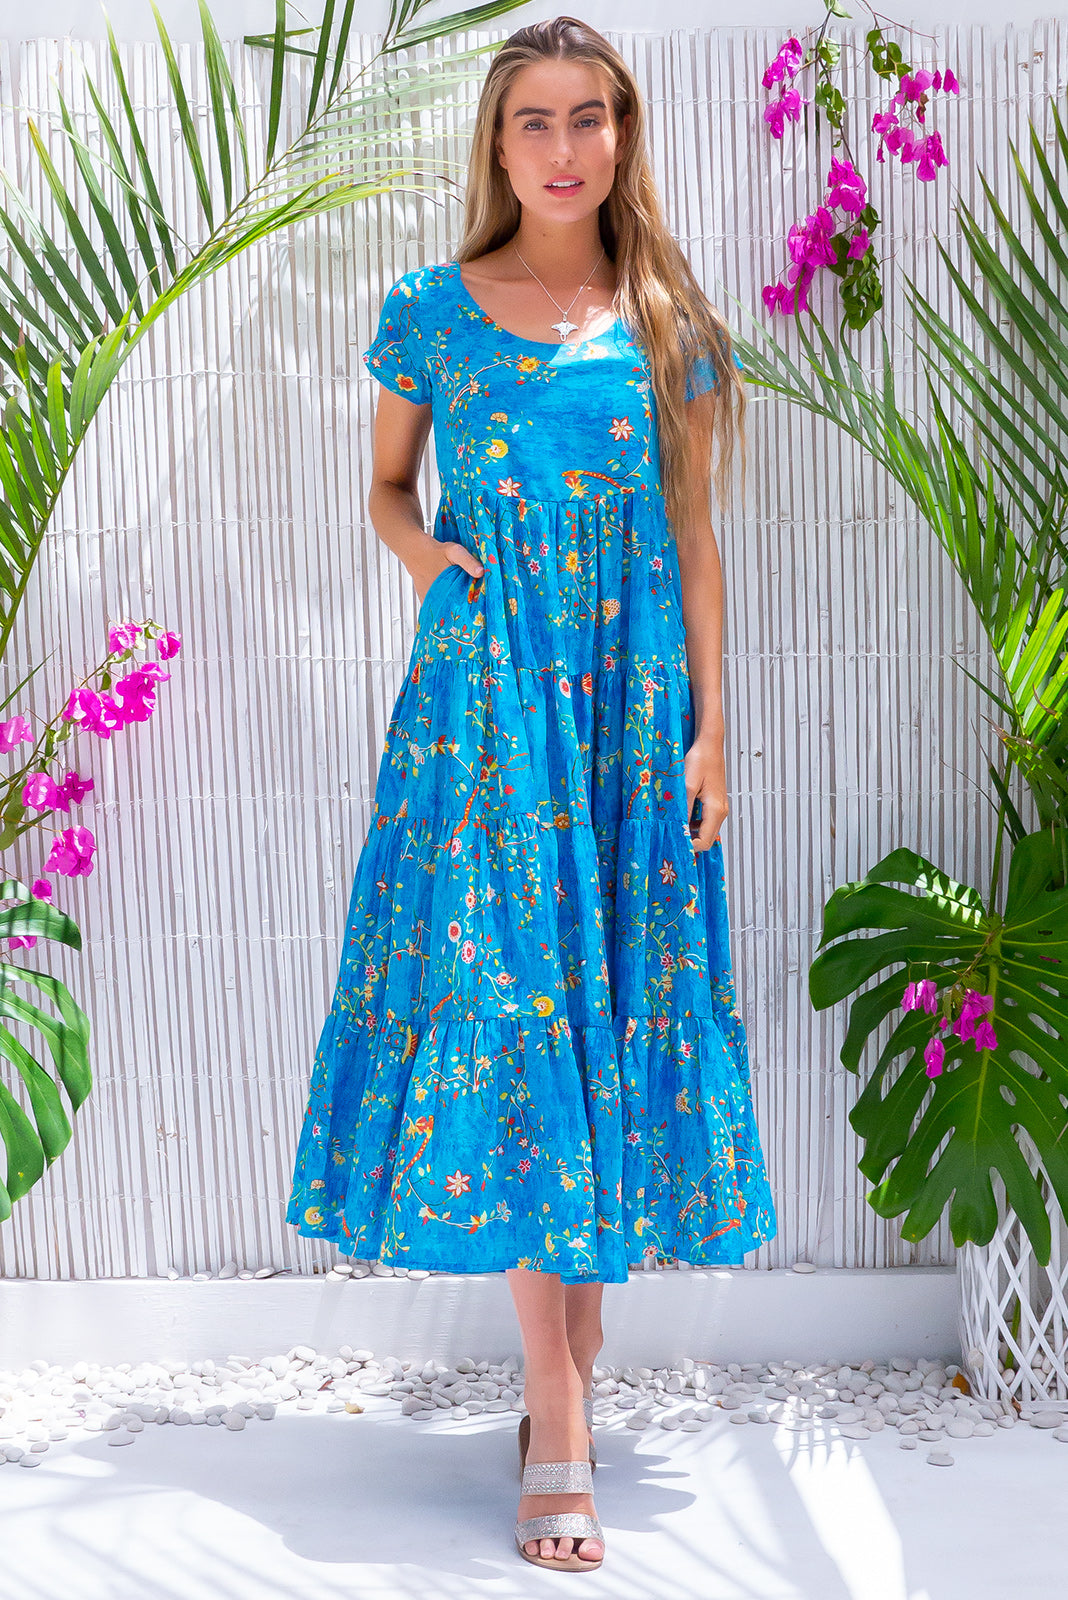 Lucky Lulu Pacific Blue Maxi Dress, bohemian summer style, 100% cotton, scooped neckline, capped sleeves, side pockets, wide four tiered skirt, bright blue base with medium multicoloured floral print featuring yellow, red, white and forest green.